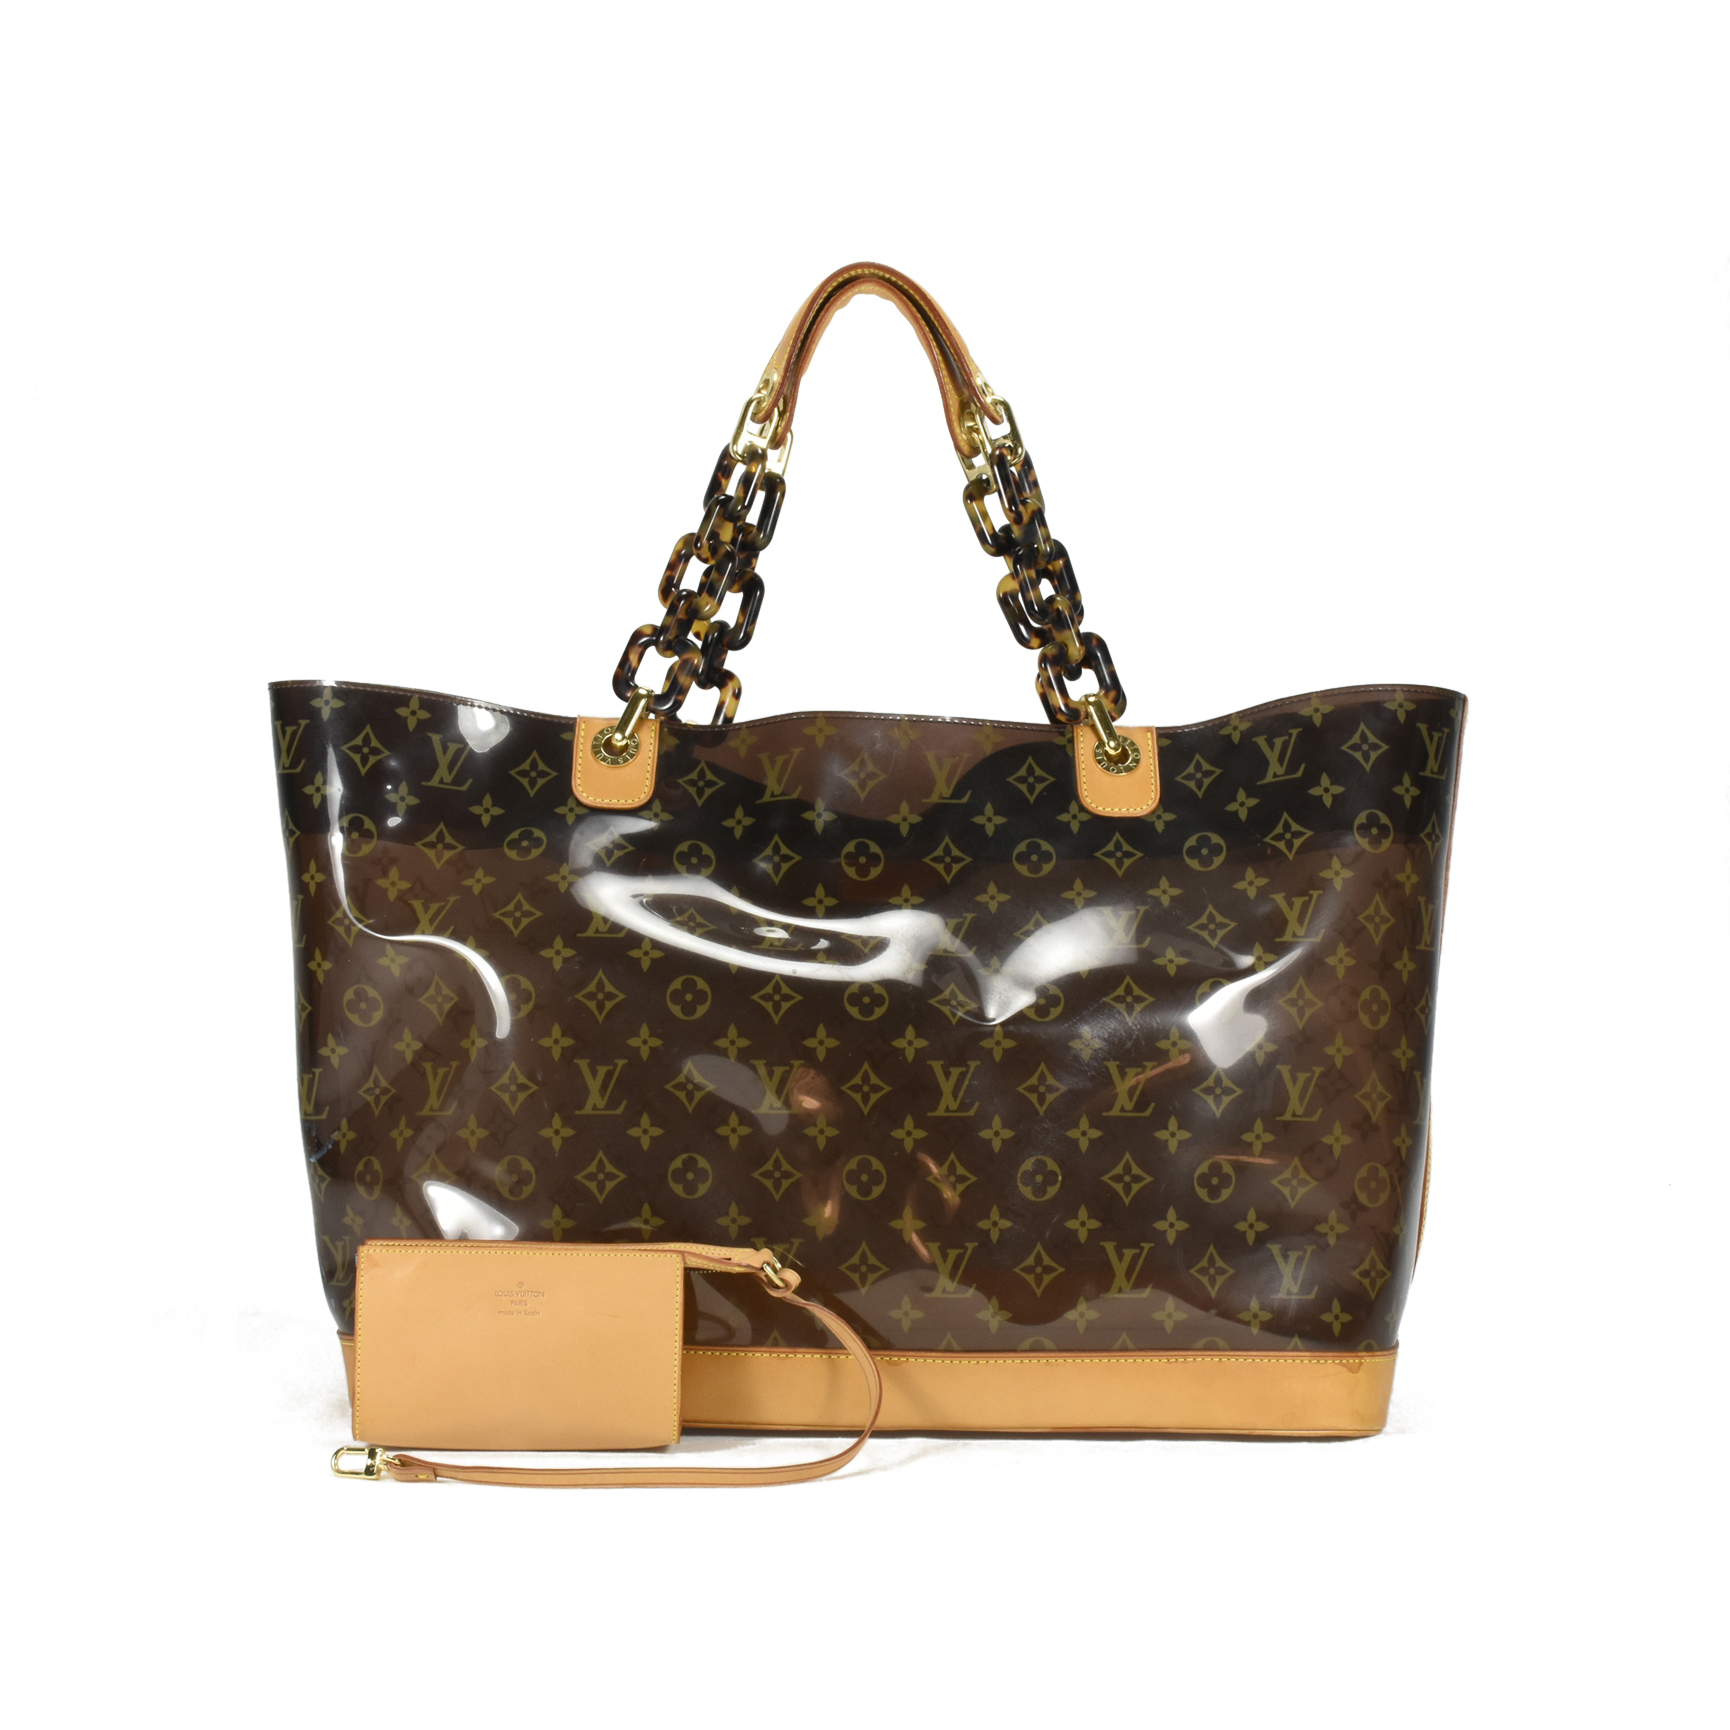 8c8c173068e0 Authentic Pre Owned Louis Vuitton Cabas Sac Ambre Monogram Vinyl Tote  (PSS-200-00881)   THE FIFTH COLLECTION®